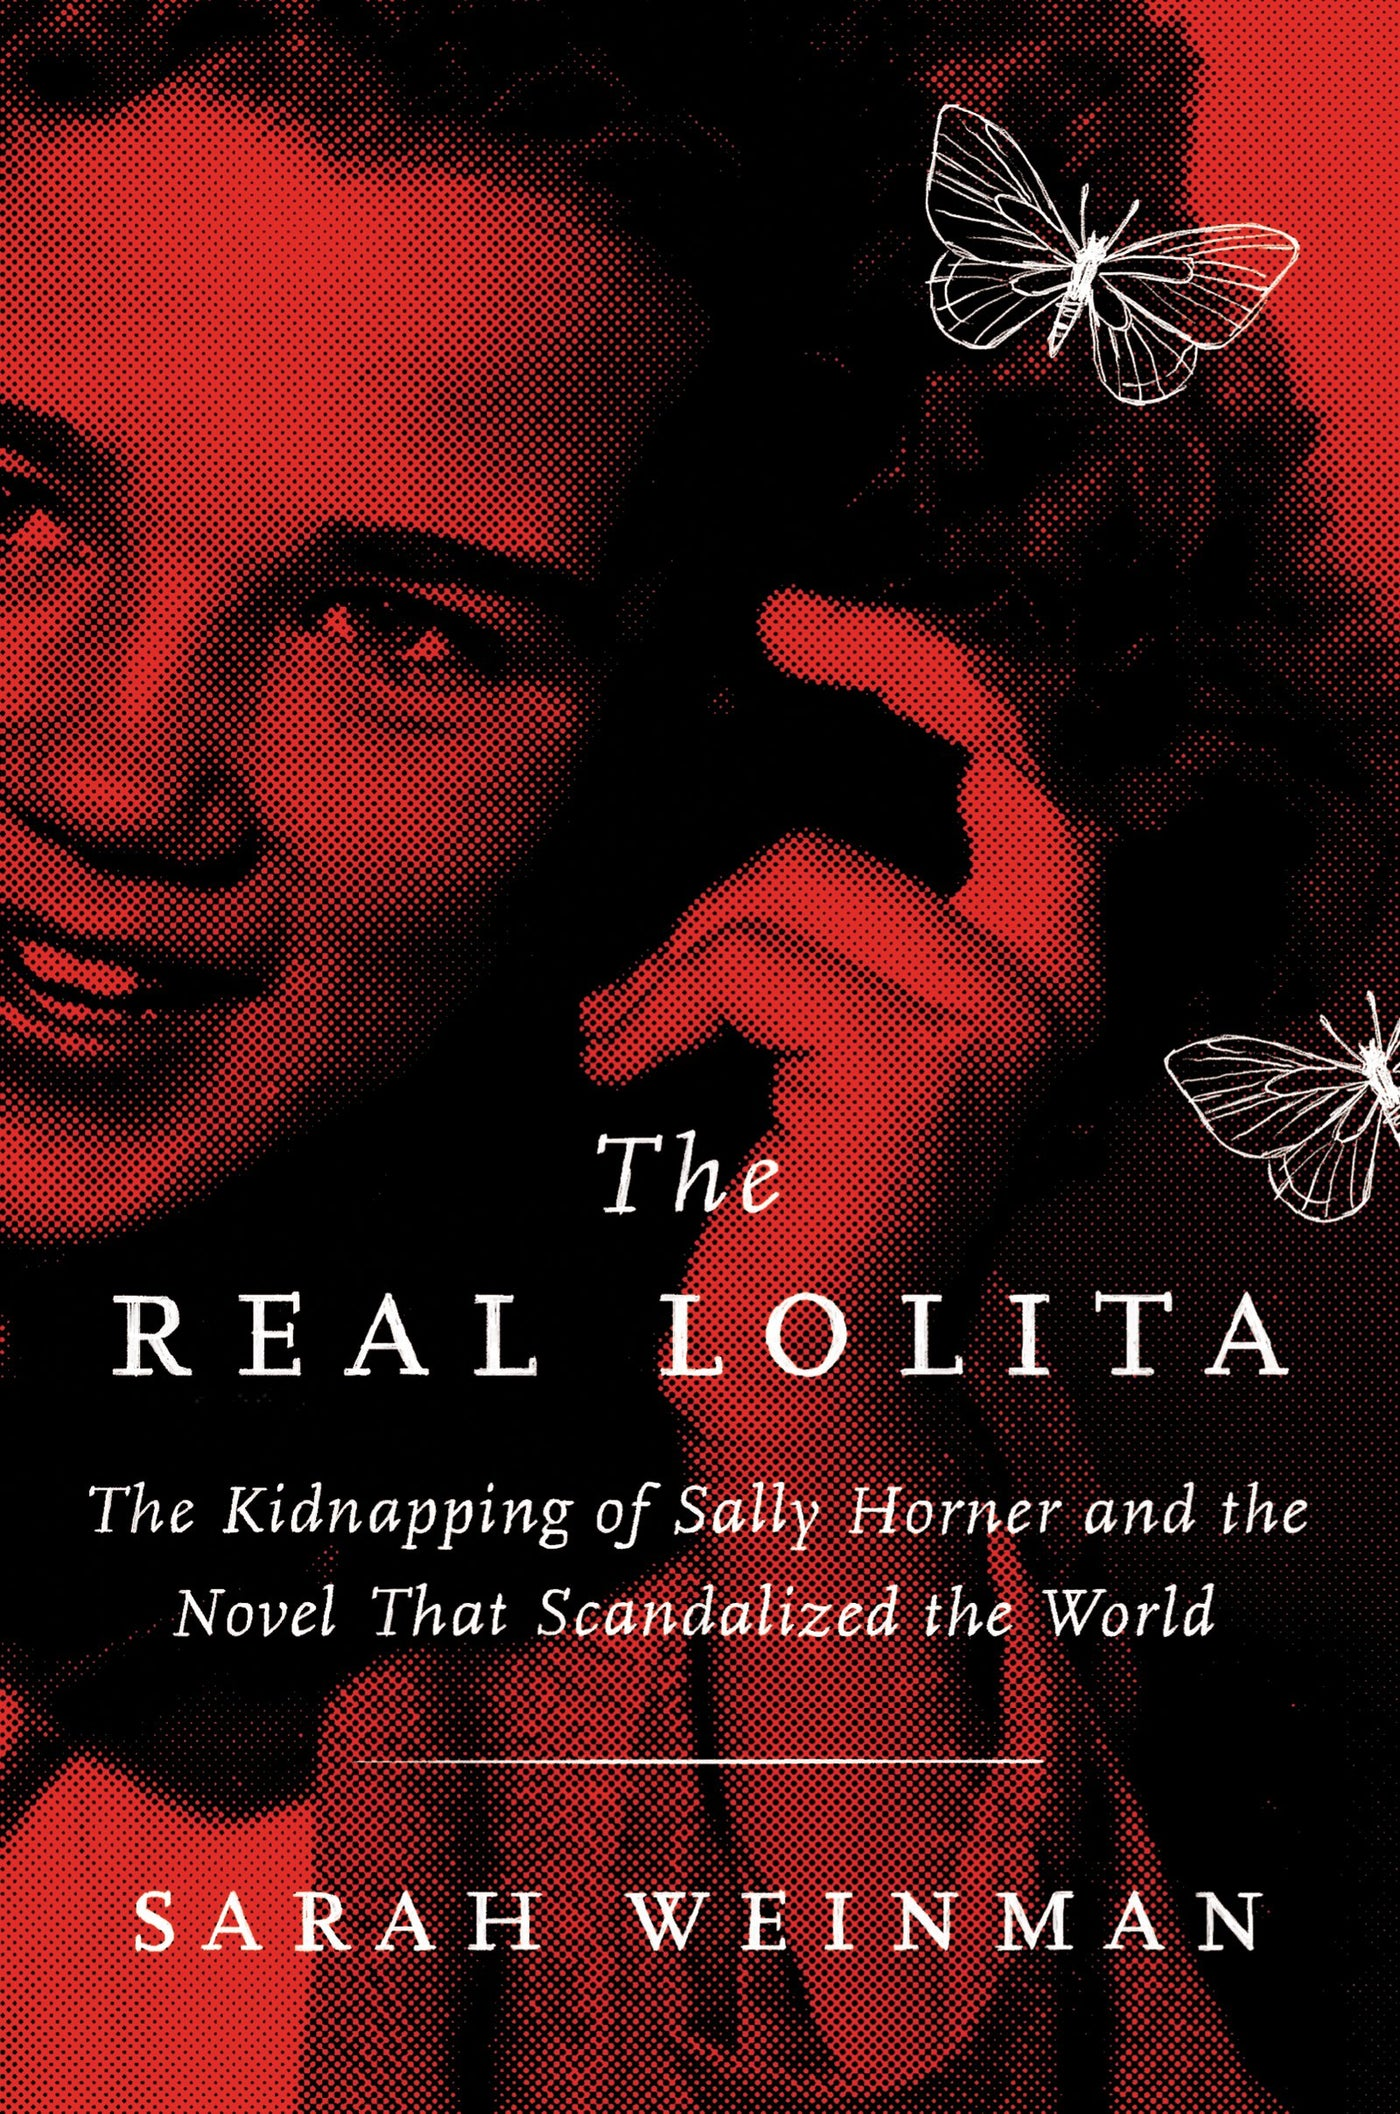 The Real Lolita: The Kidnapping of Sally Horner and the Novel That Scandalized the World by Sarah Weinman